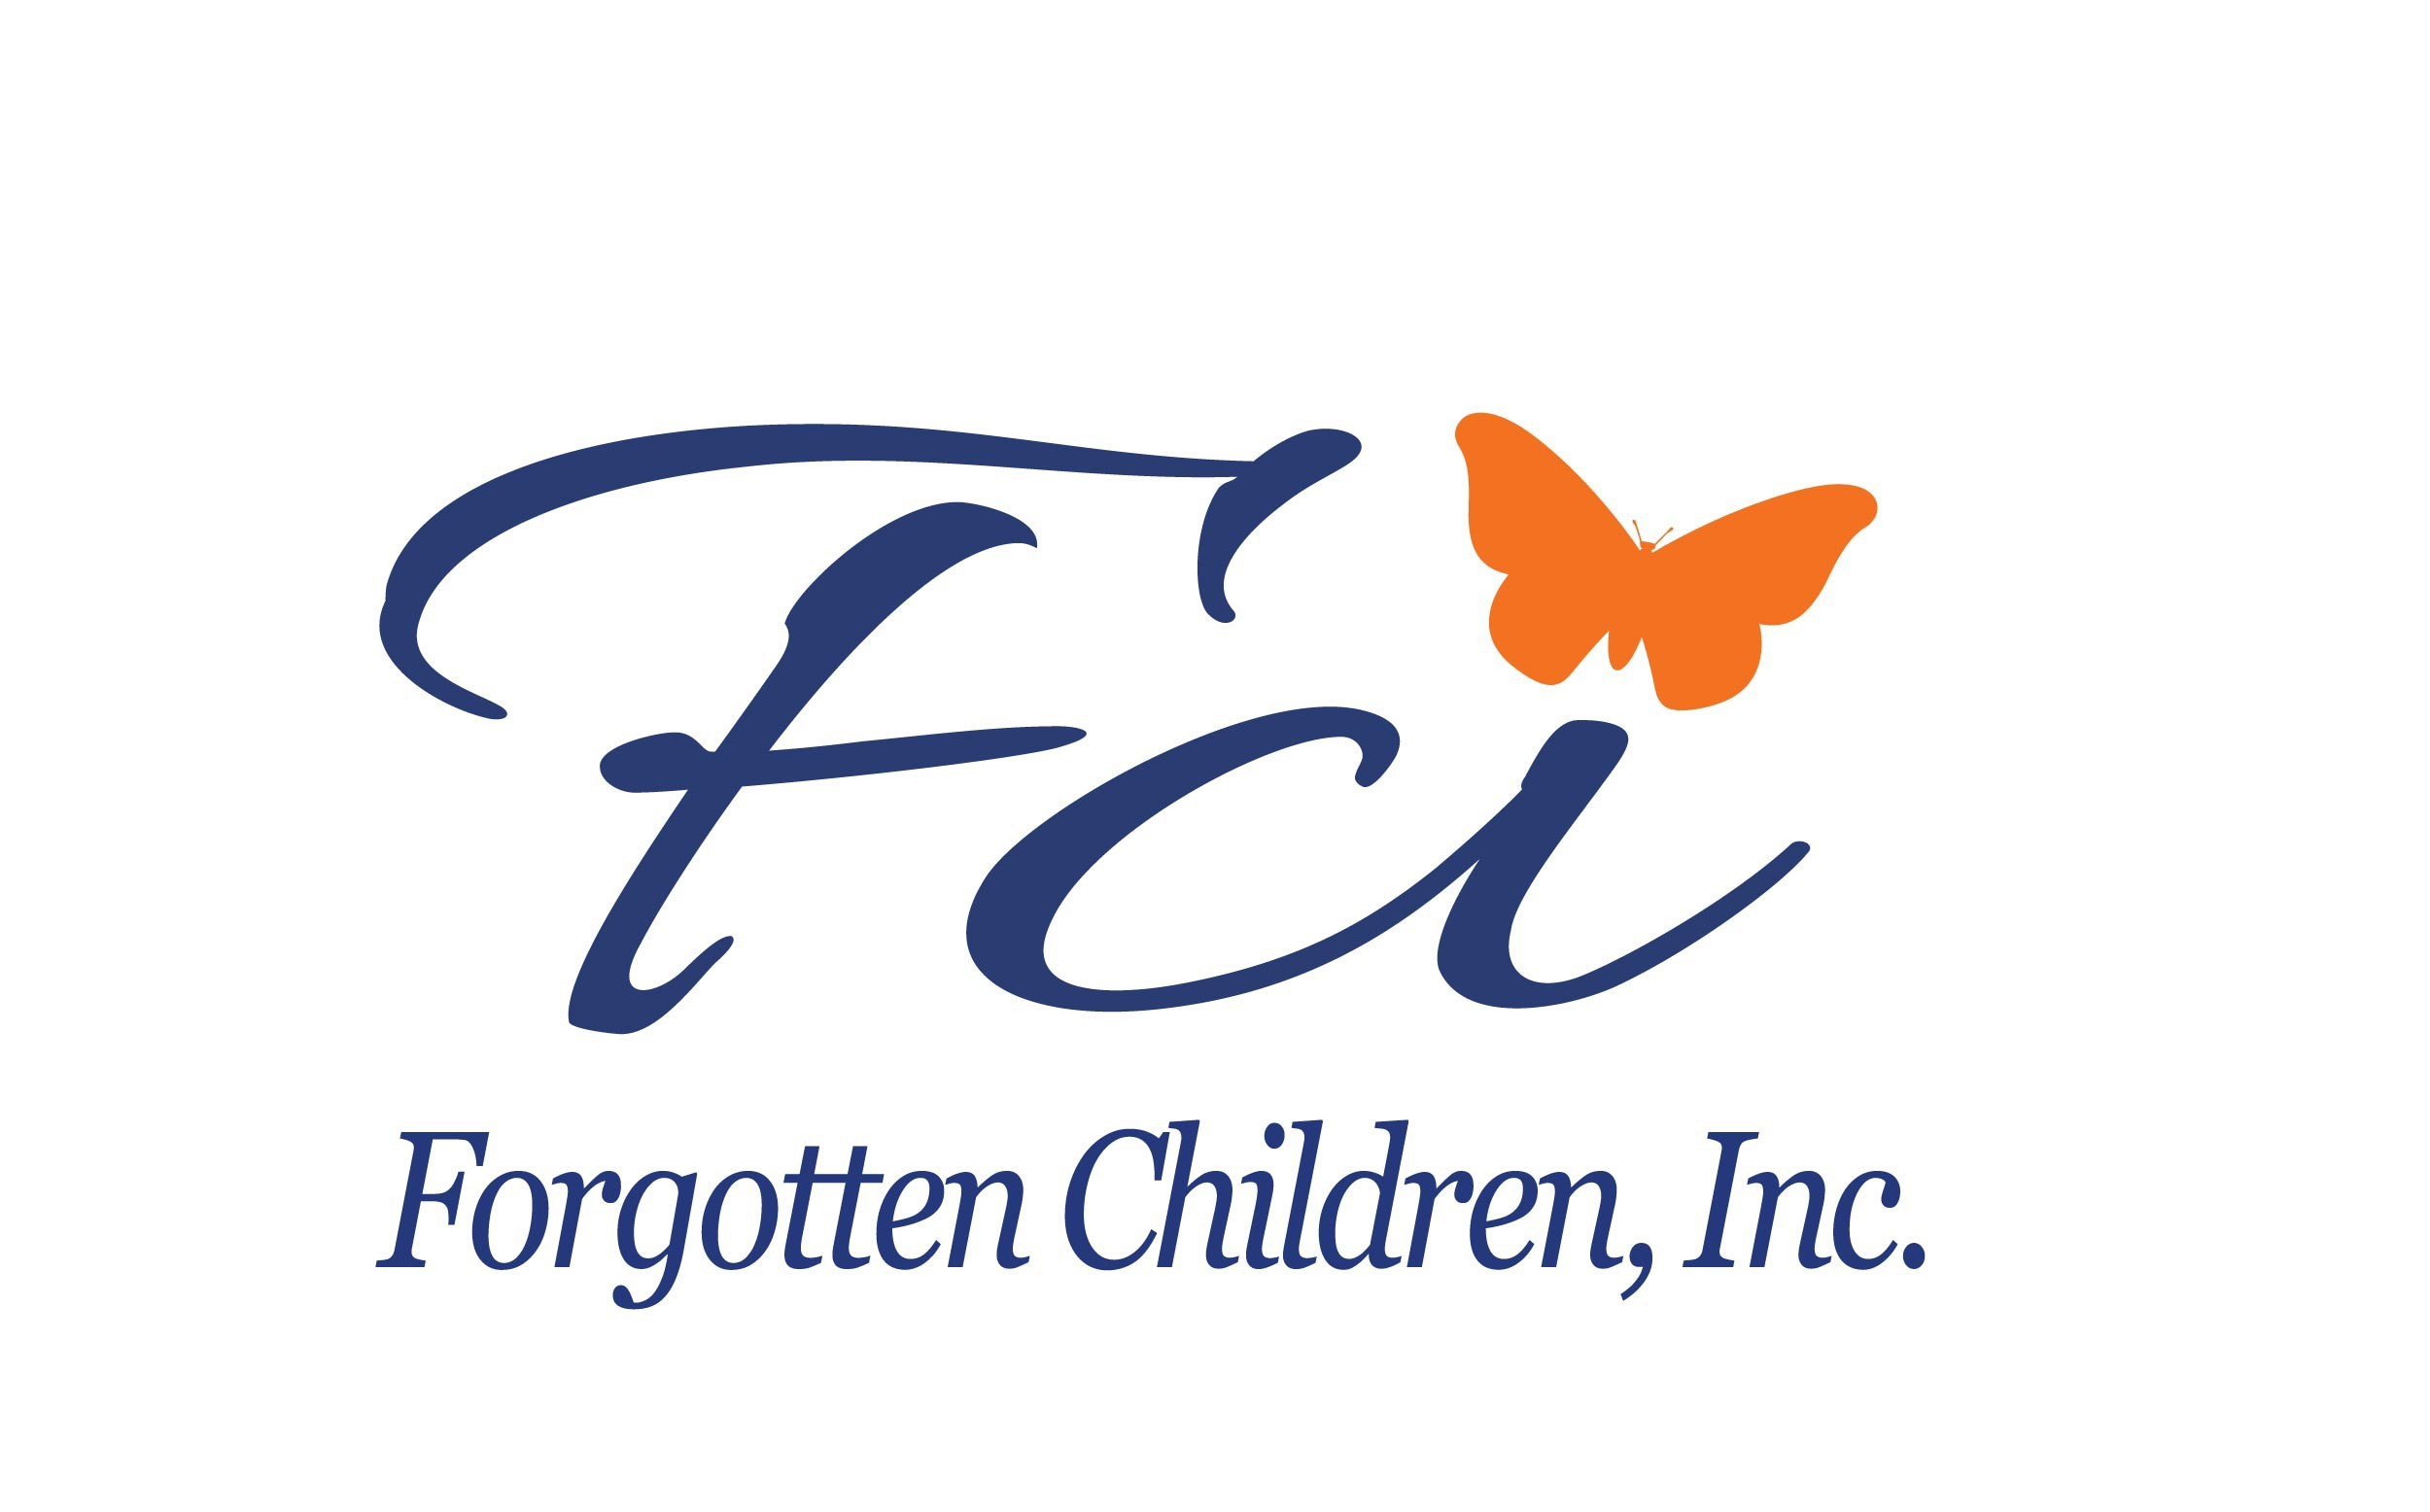 Forgotten Children logo